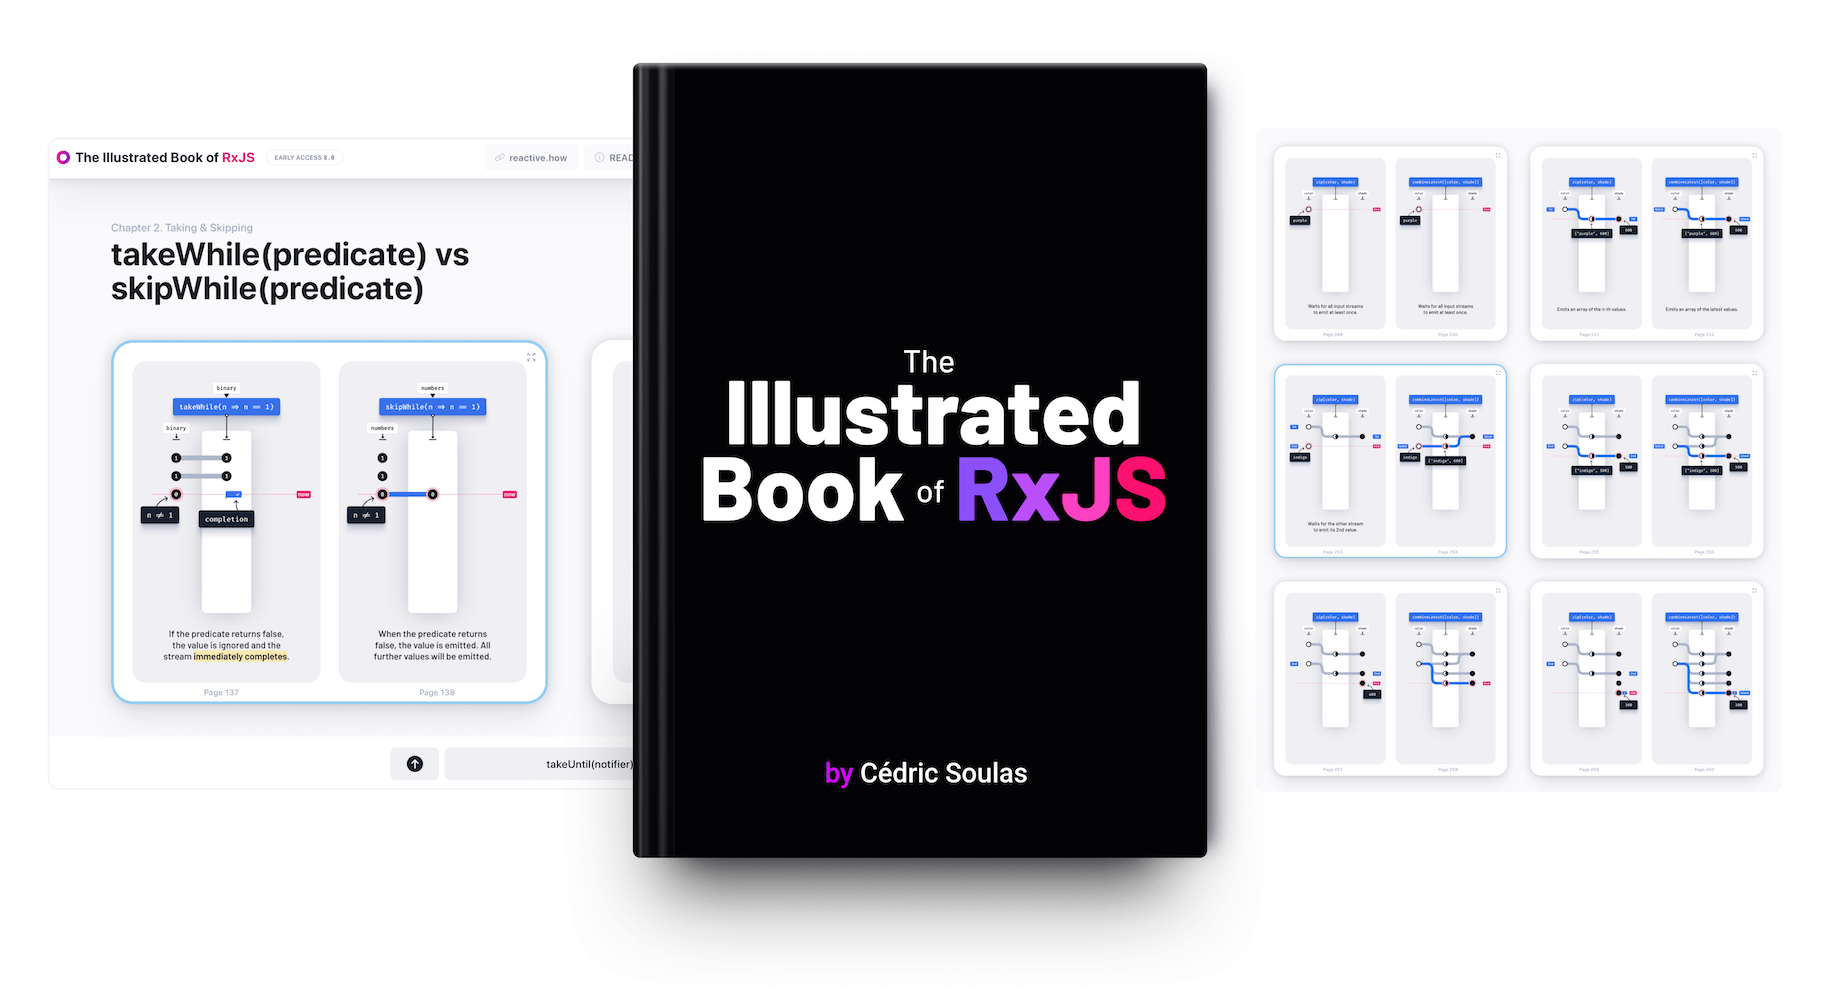 The Illustrated Book of RxJS